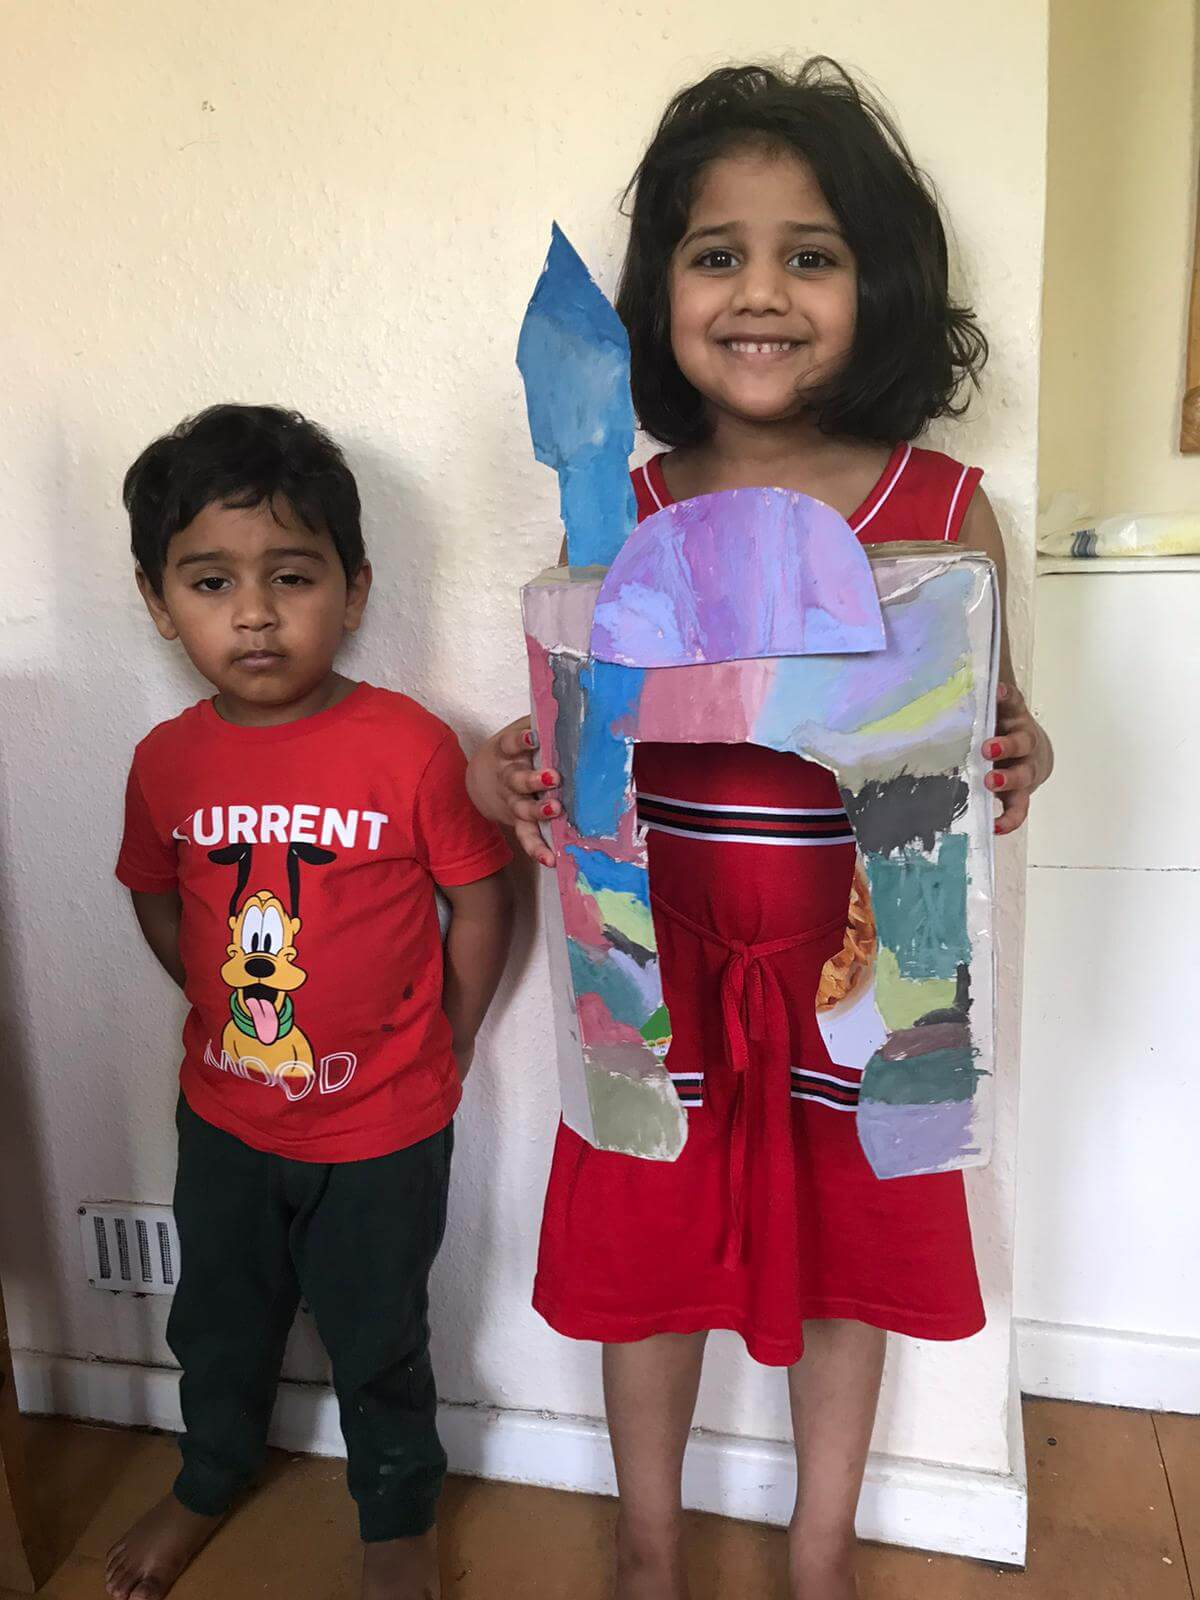 During Ramadan under lockdown a brother and sister in Wales were unable to visit the mosque, so made their own at home out of cardboard boxes.